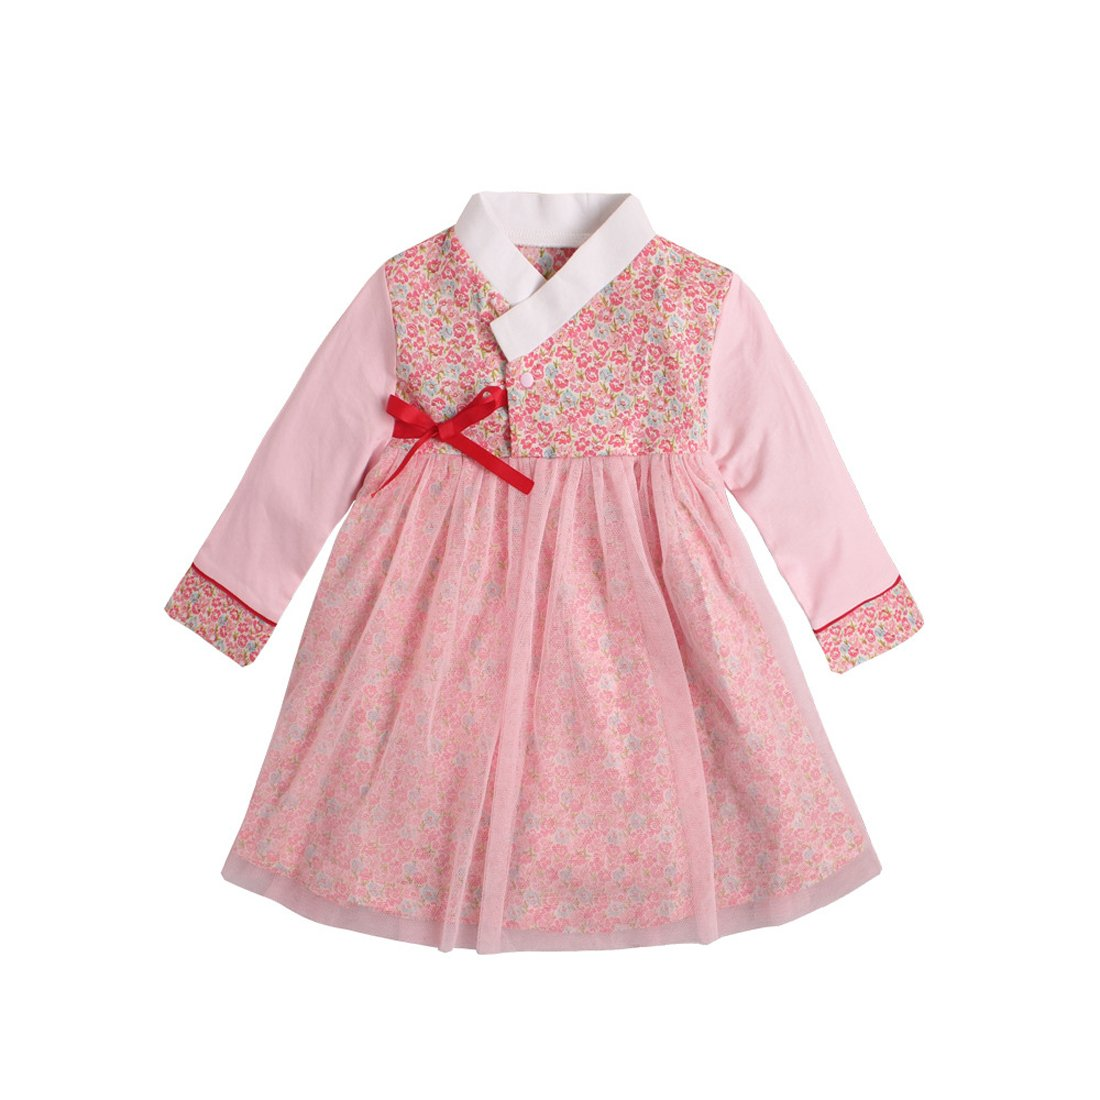 PAUBOLI Baby Girl Korean Clothes Long Sleeve Romper Dress Korean Hanbok